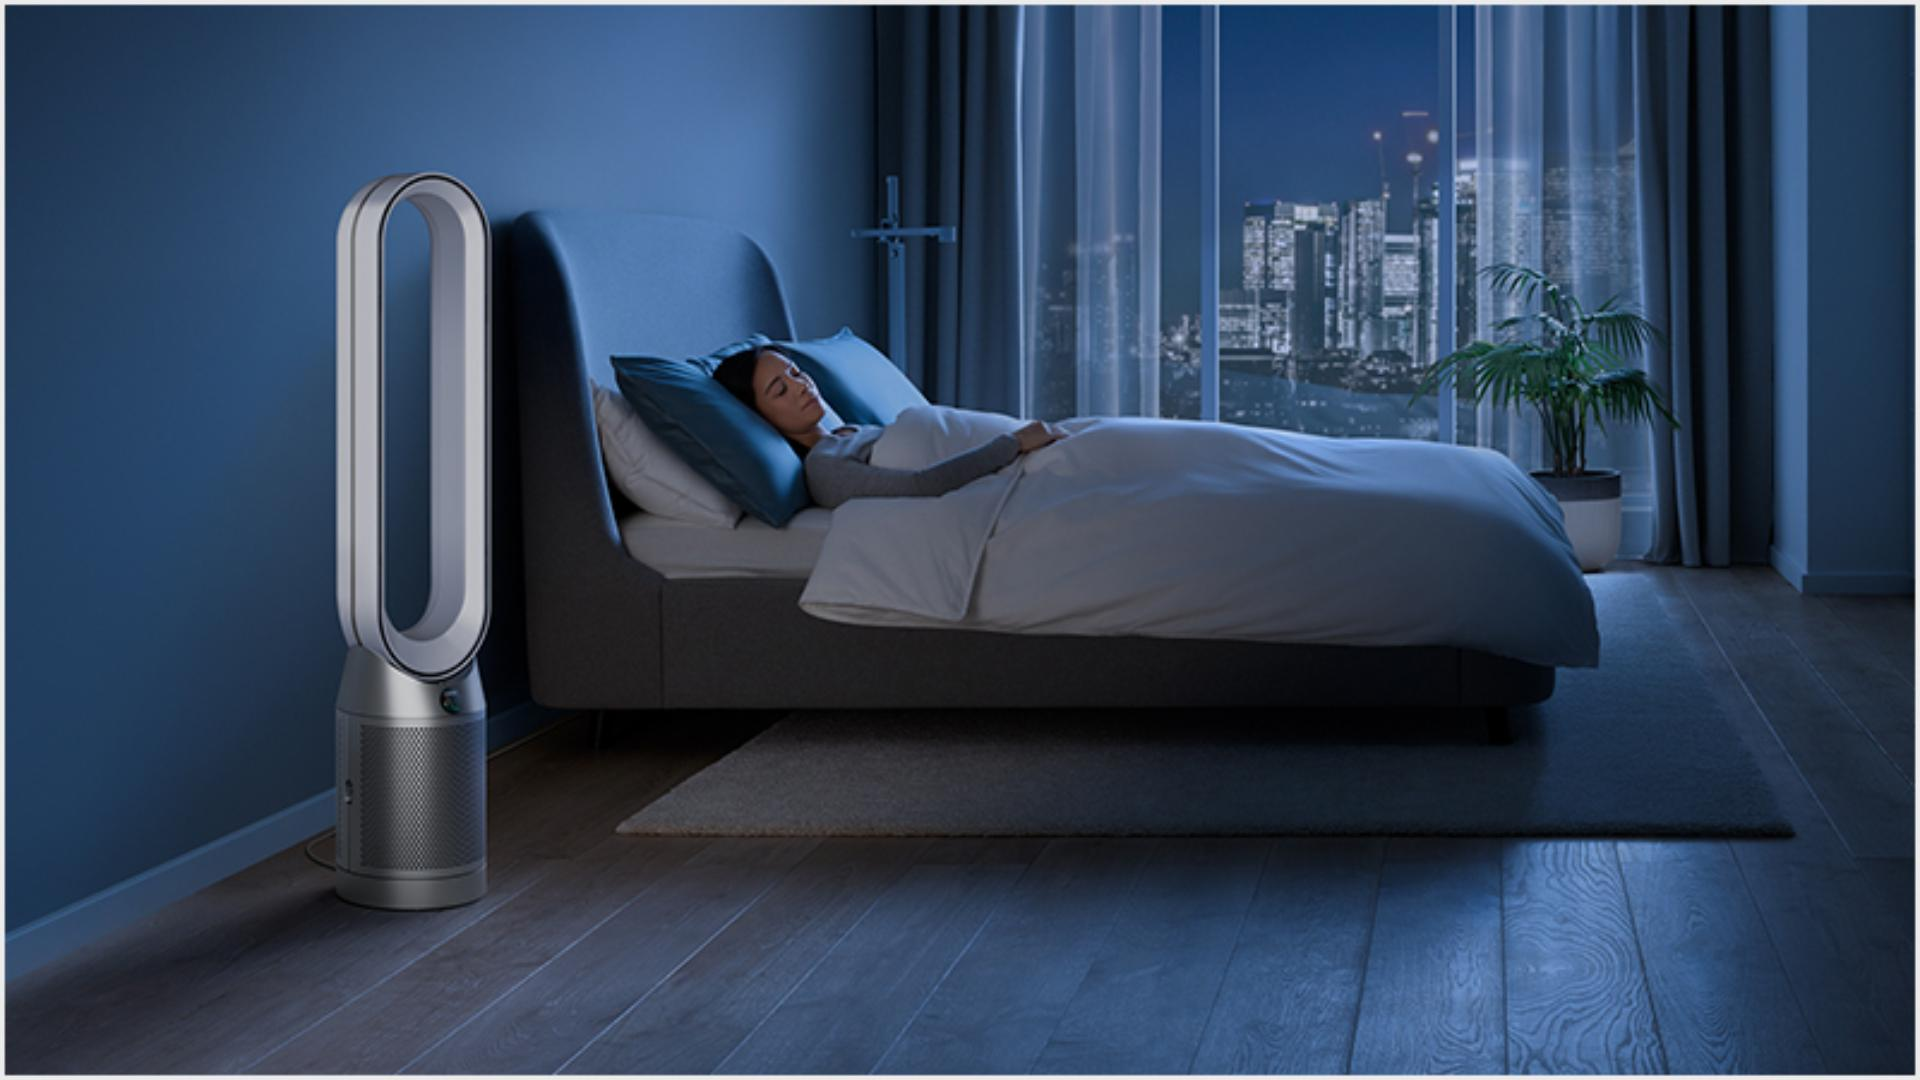 Someone sleeping peacfeully in a hotel room purified by a Dyson purifier